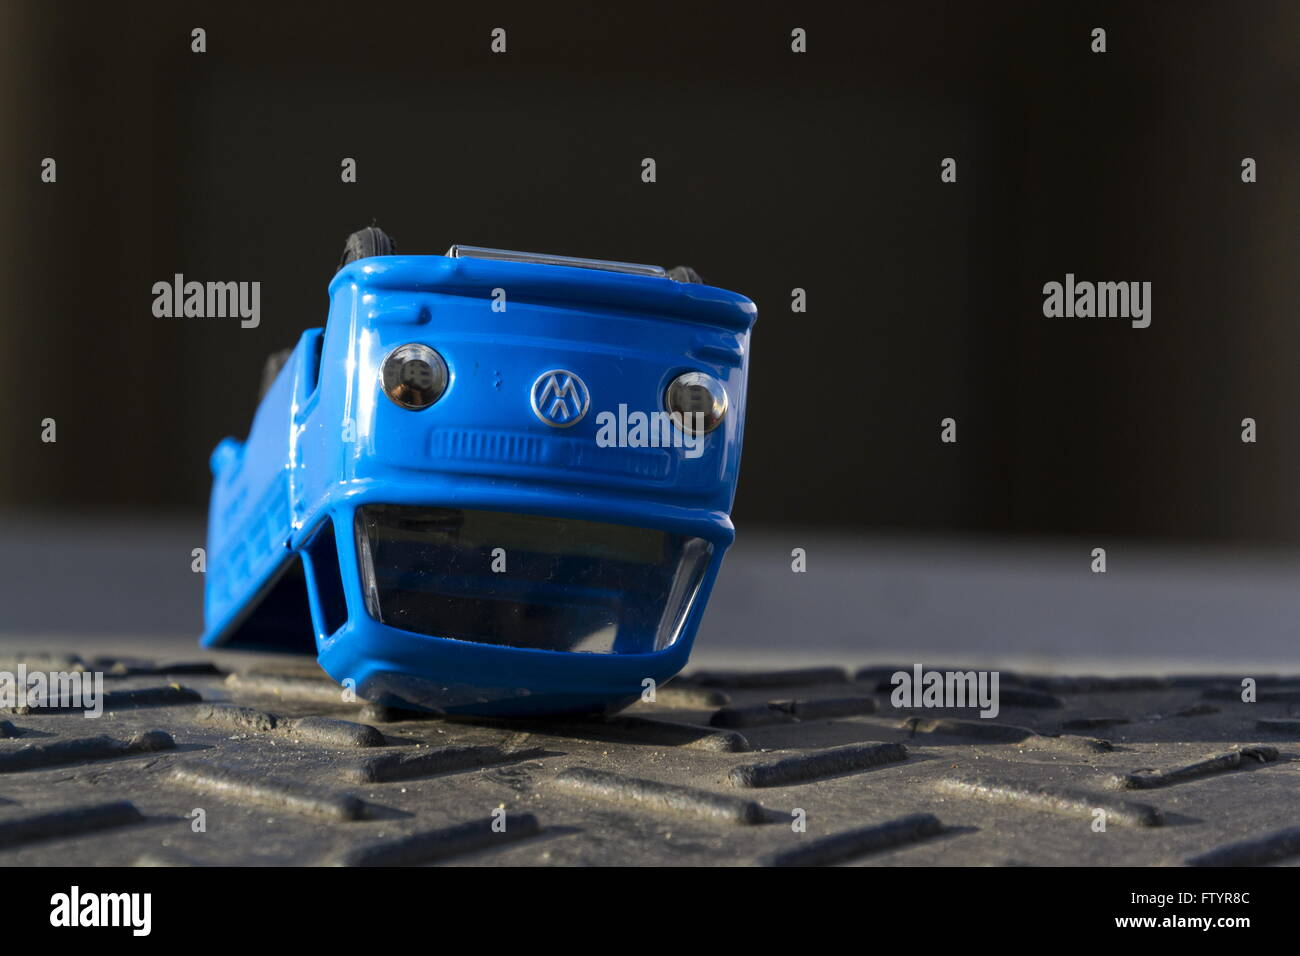 Illustrative photo of Volkswagen toy car for diesel engine emission scandal - Stock Image